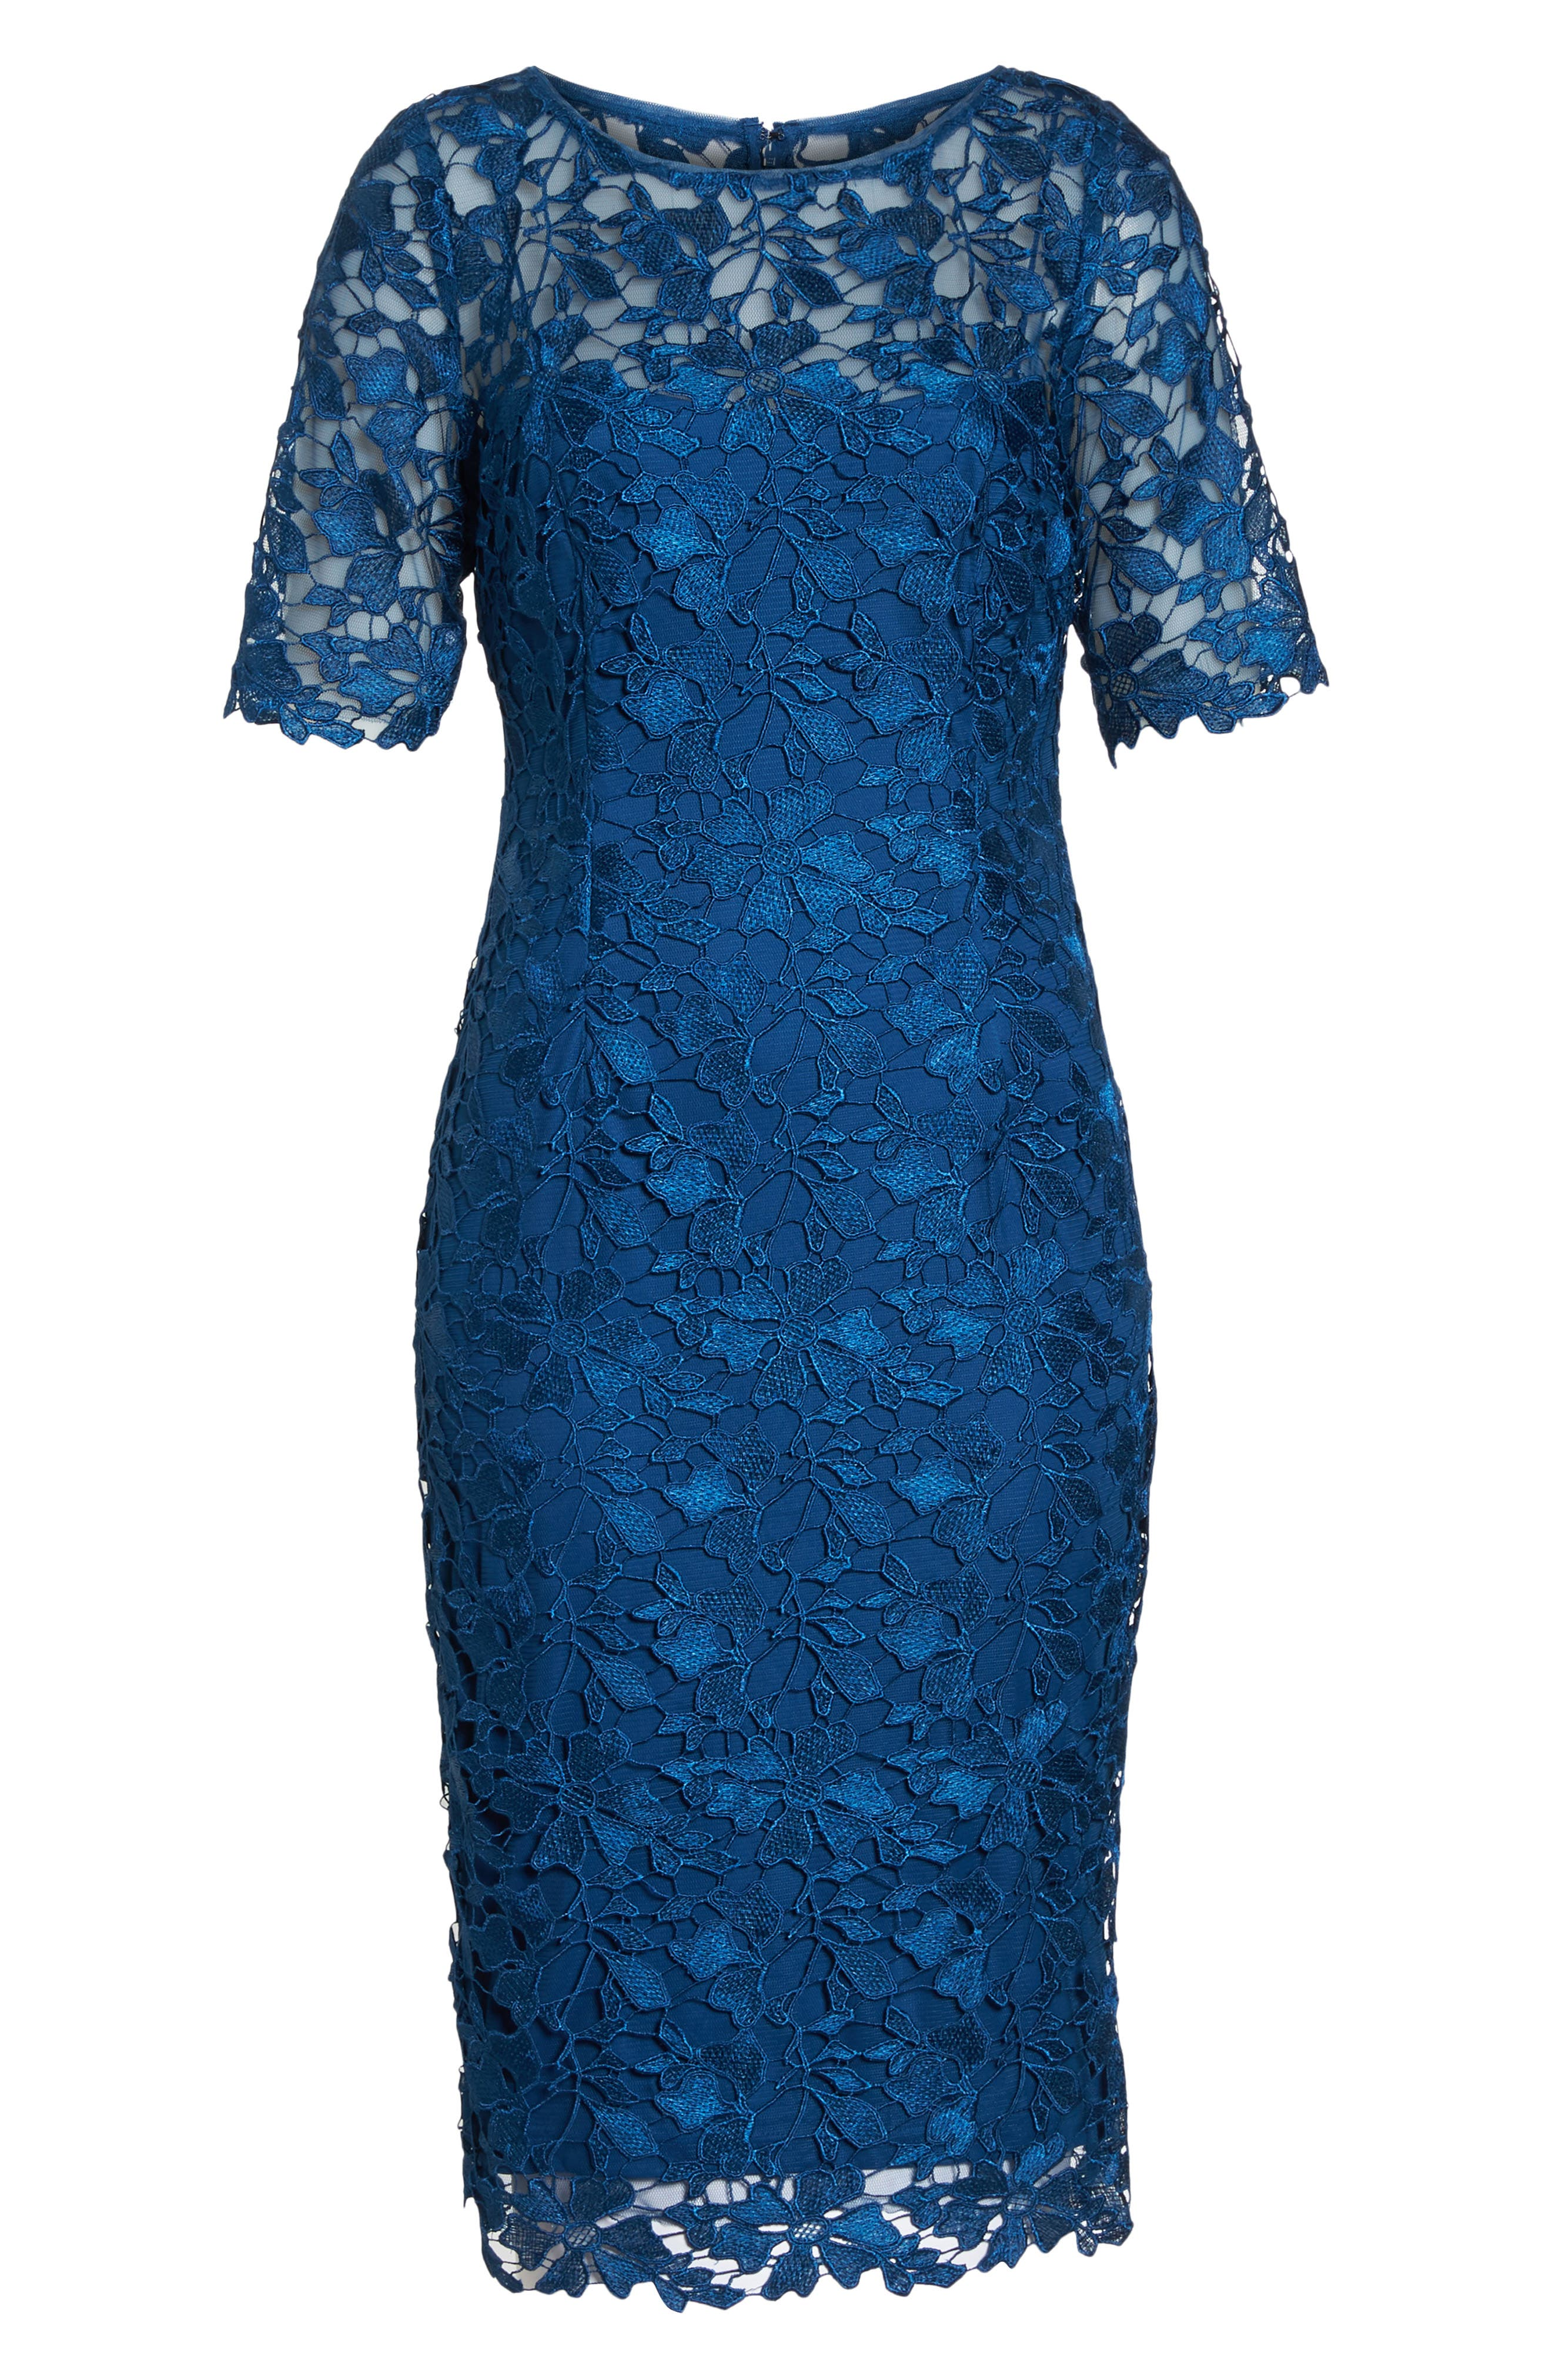 ADRIANNA PAPELL,                             Guipure Lace Sheath Dress,                             Alternate thumbnail 7, color,                             413